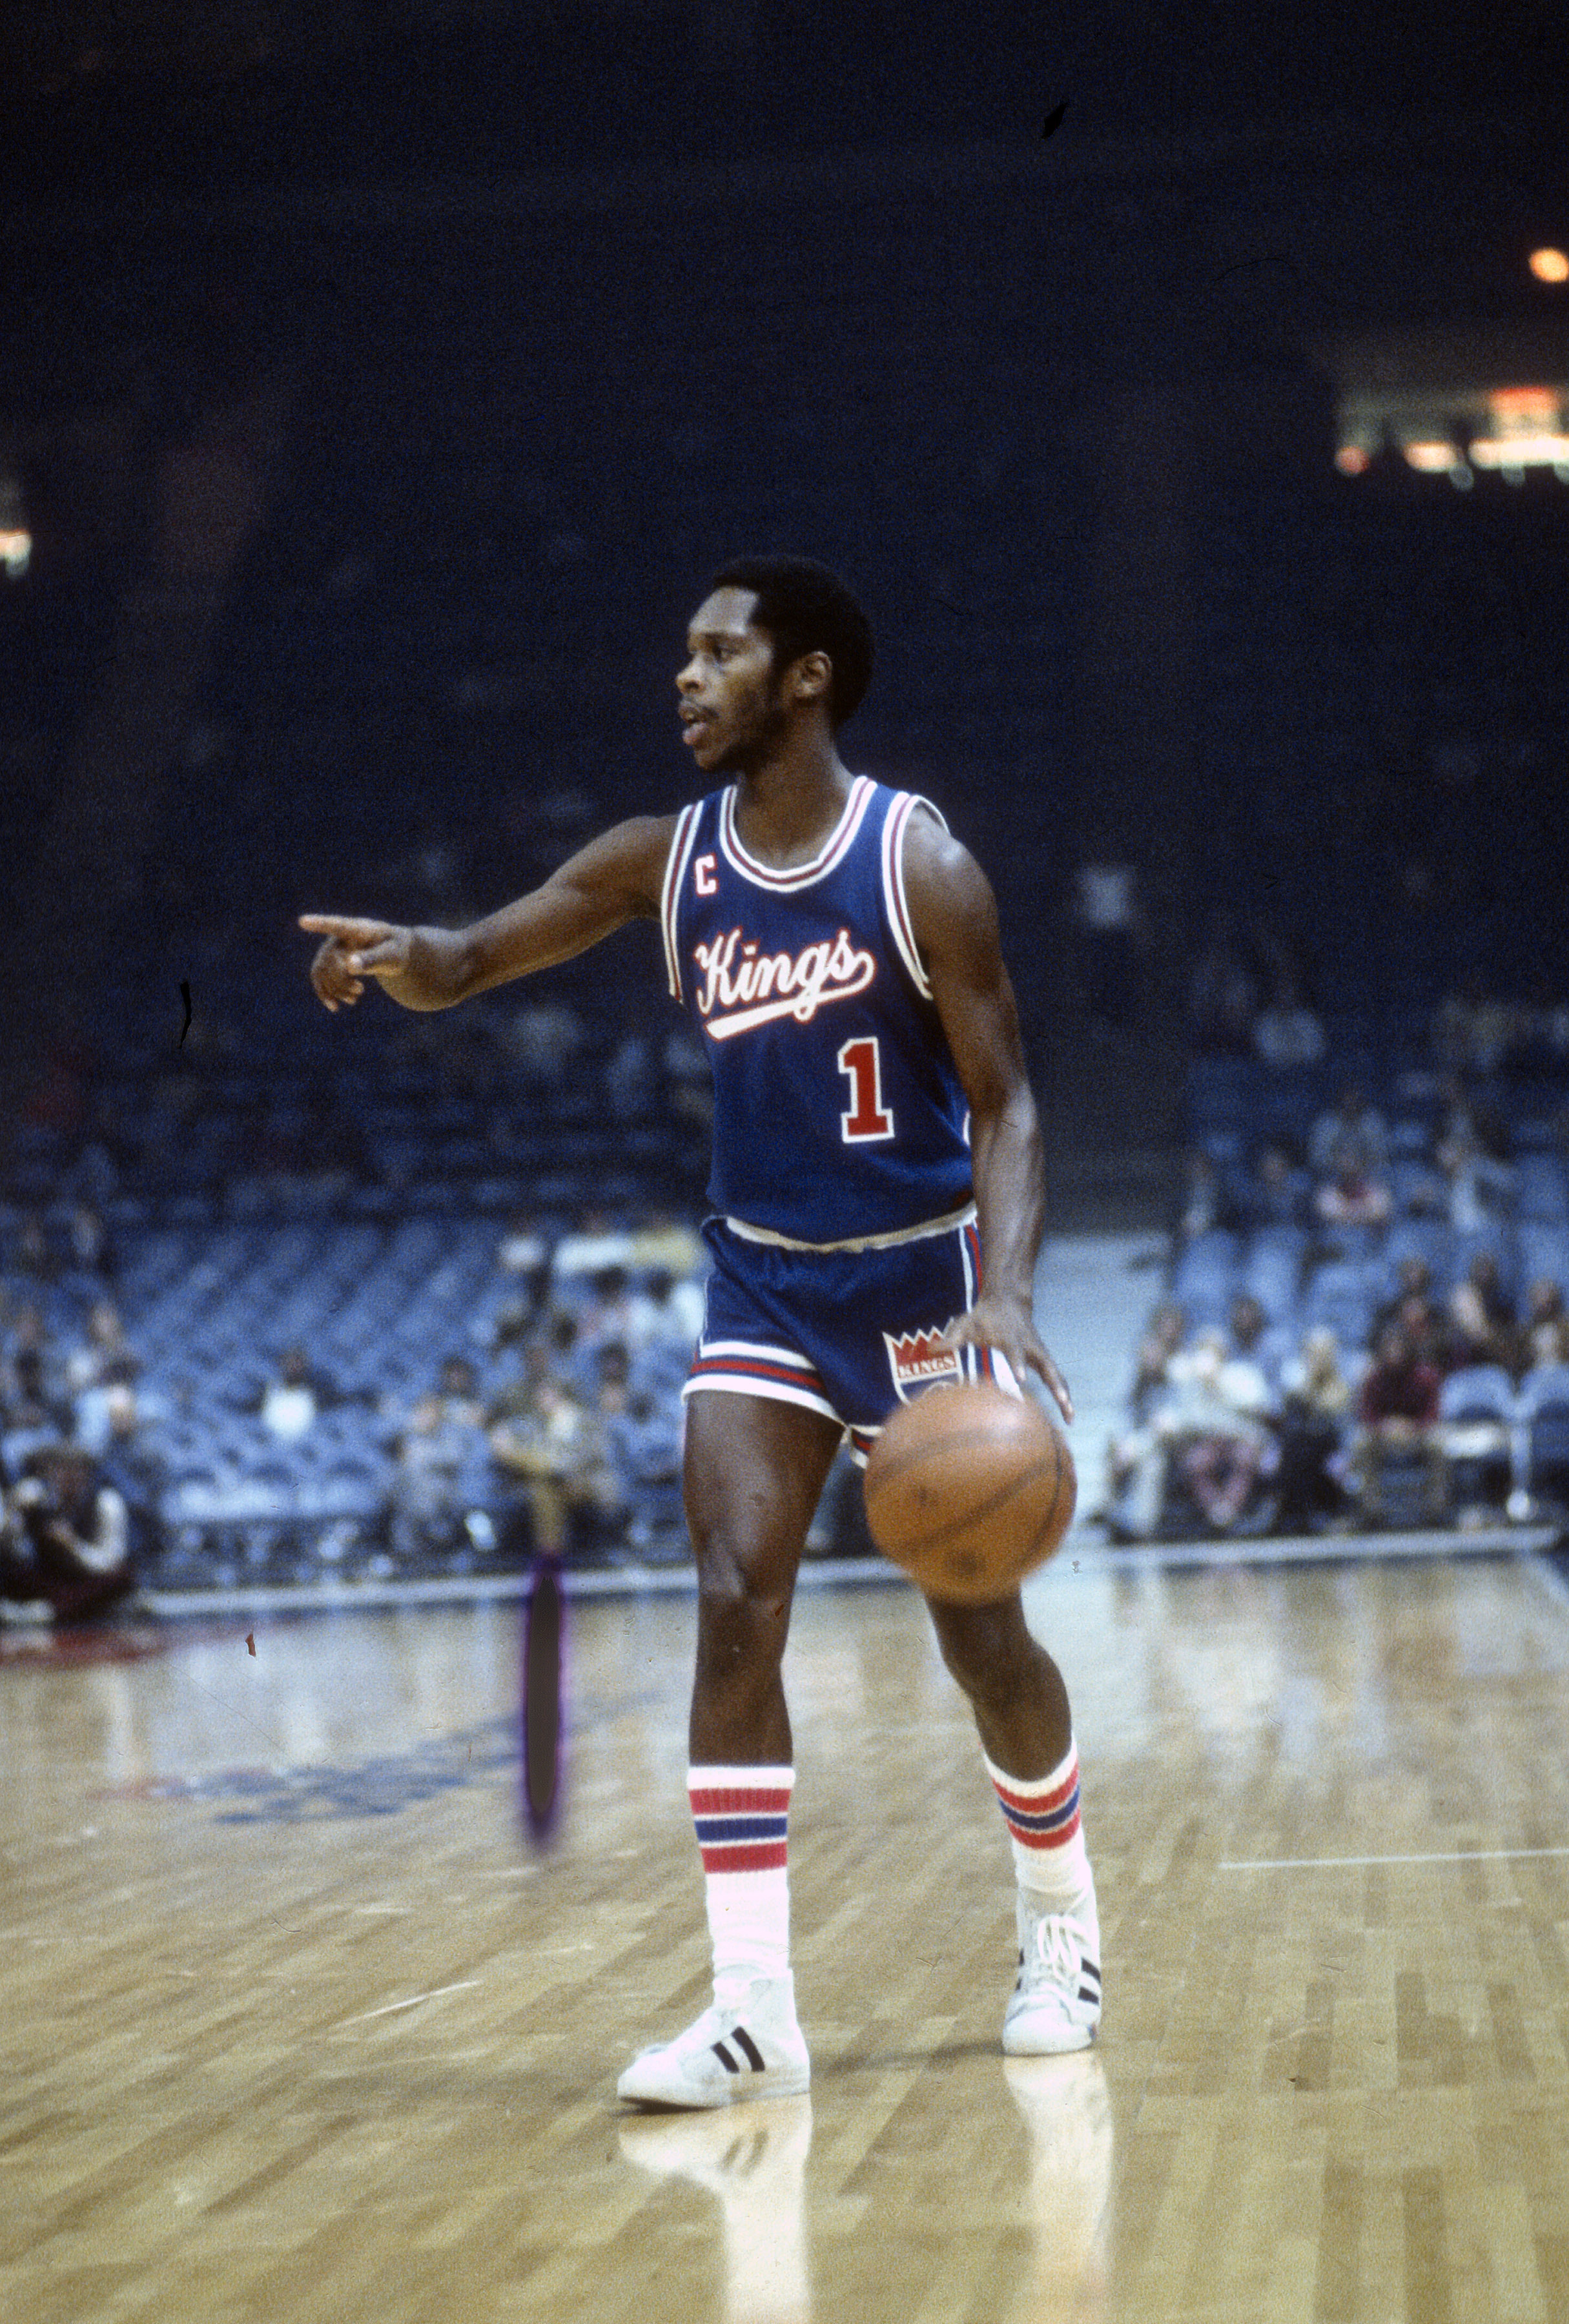 0cee2fd27 Nate Archibald of the Kansas City Kings dribbles the ball up court against  the Washington Bullets during an NBA basketball game circa 1975 at the  Capital ...